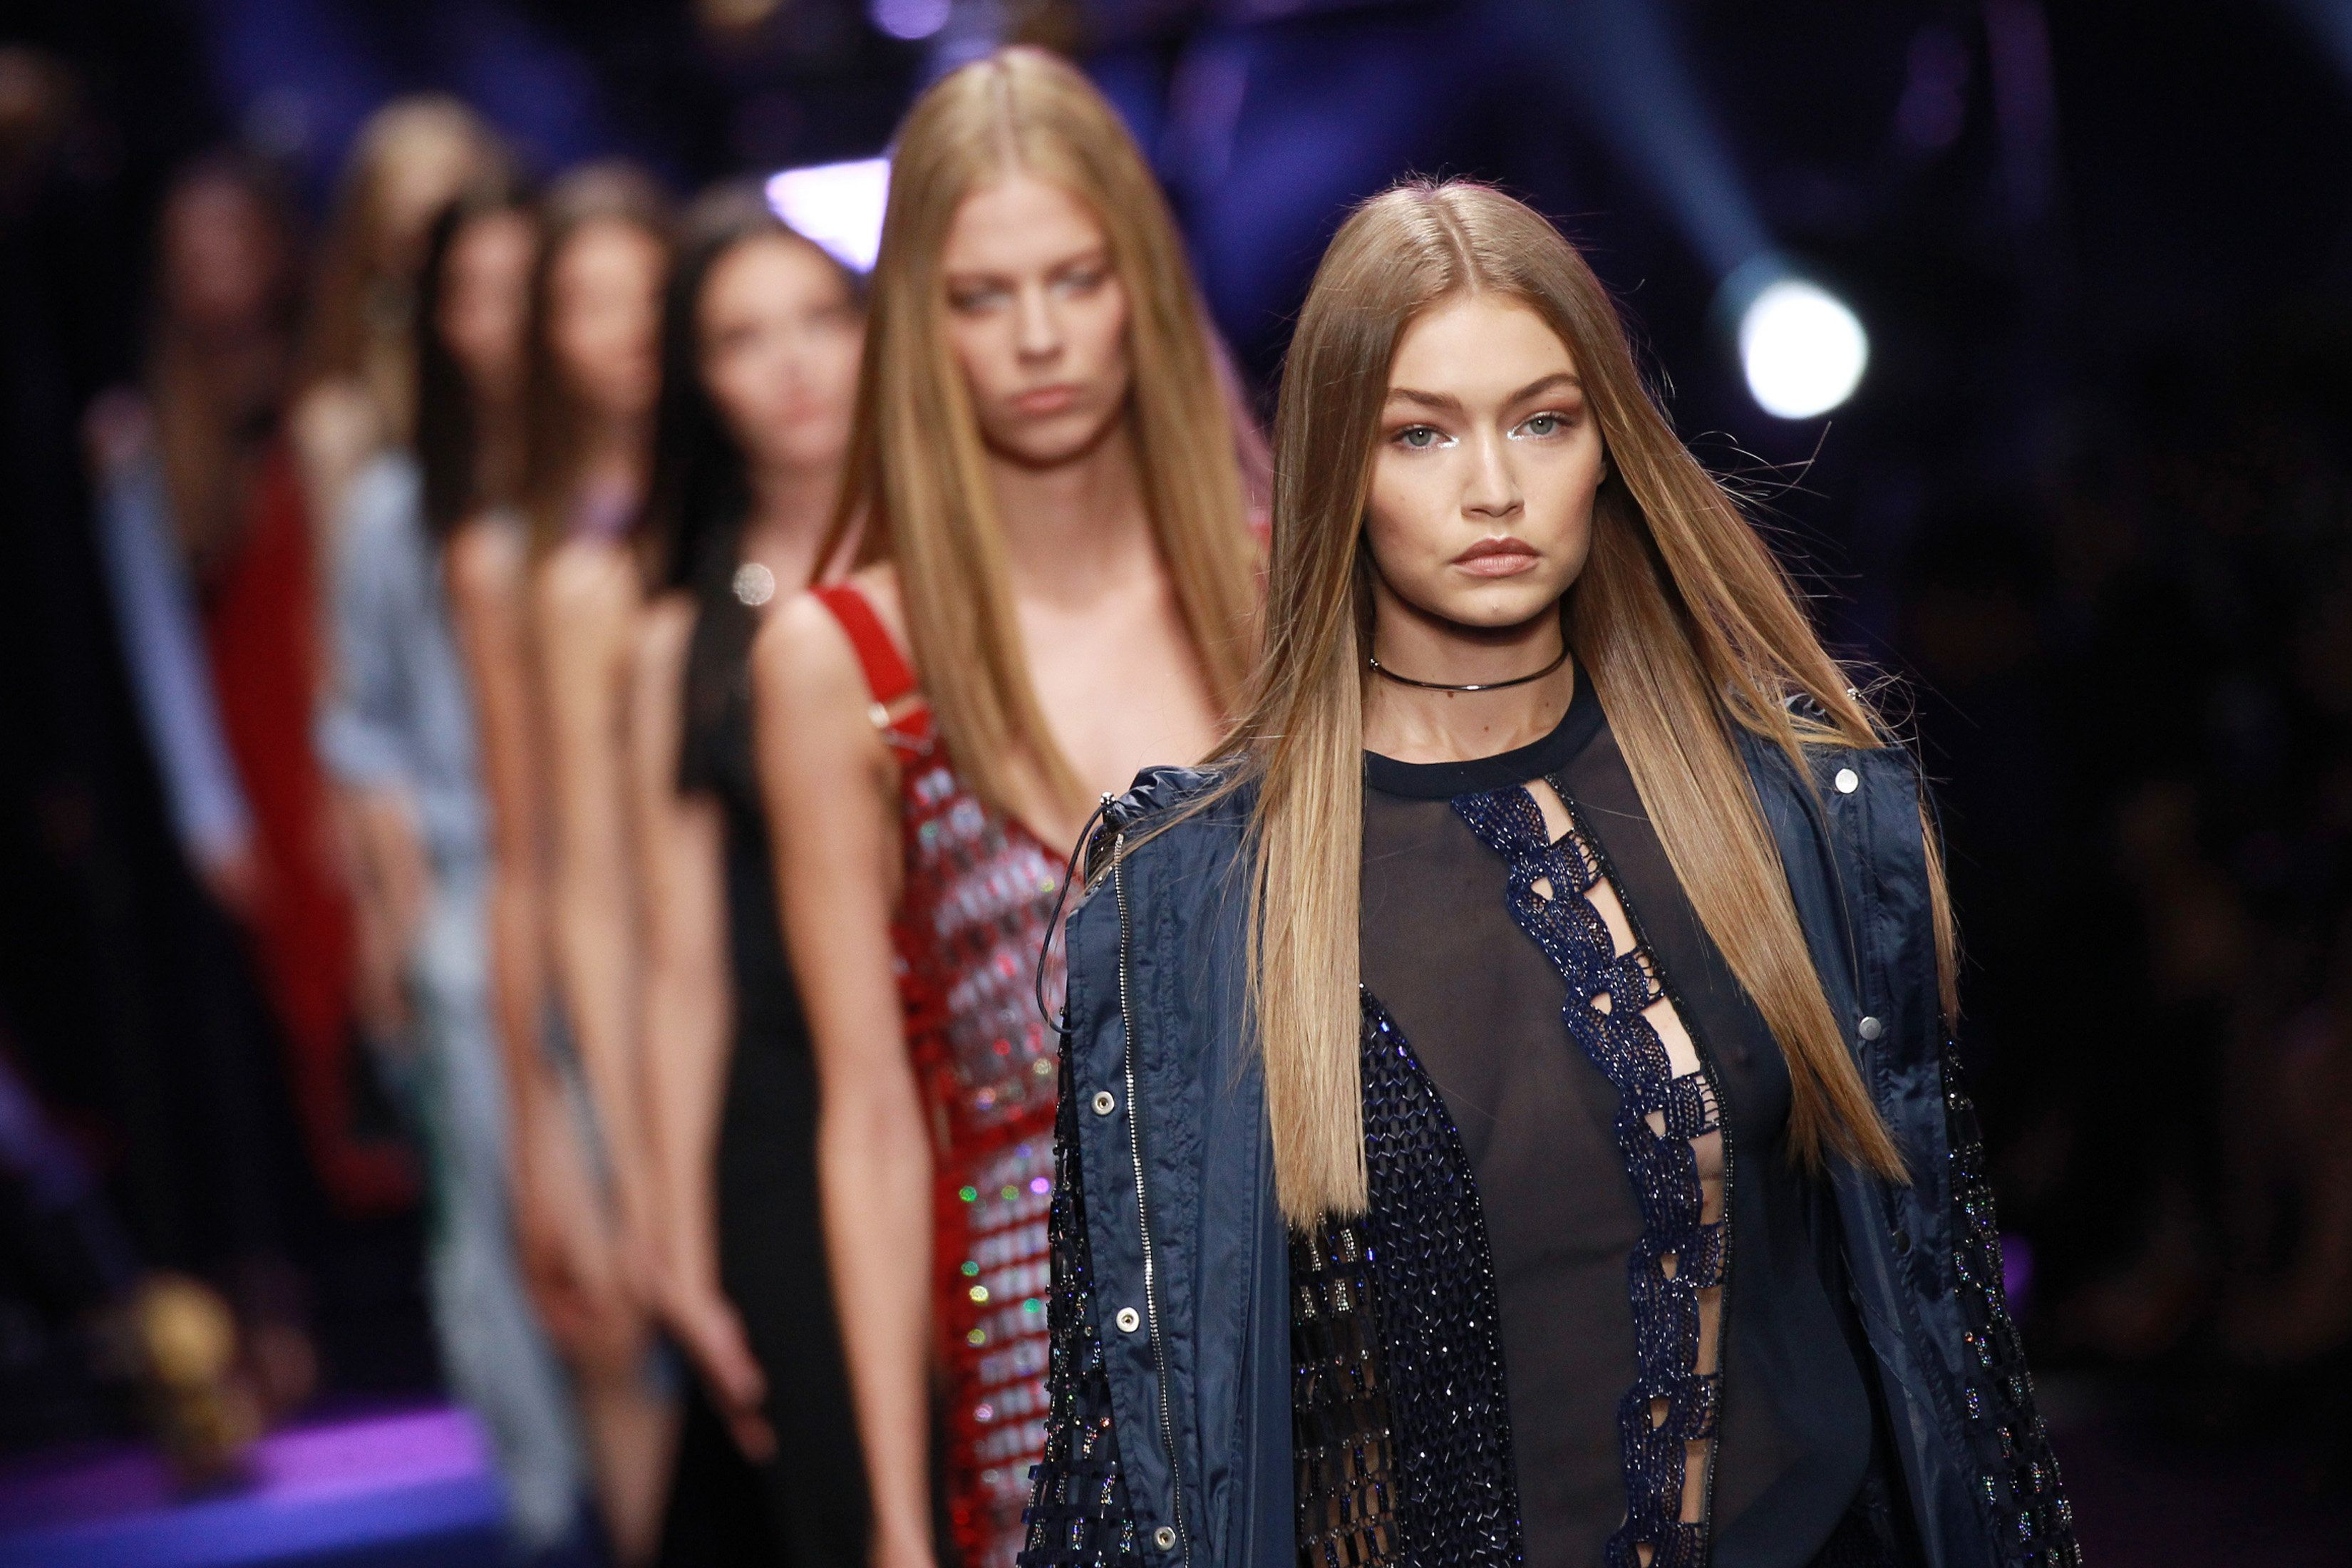 Gigi Hadid walks the runway at the Versace show during Milan Fashion